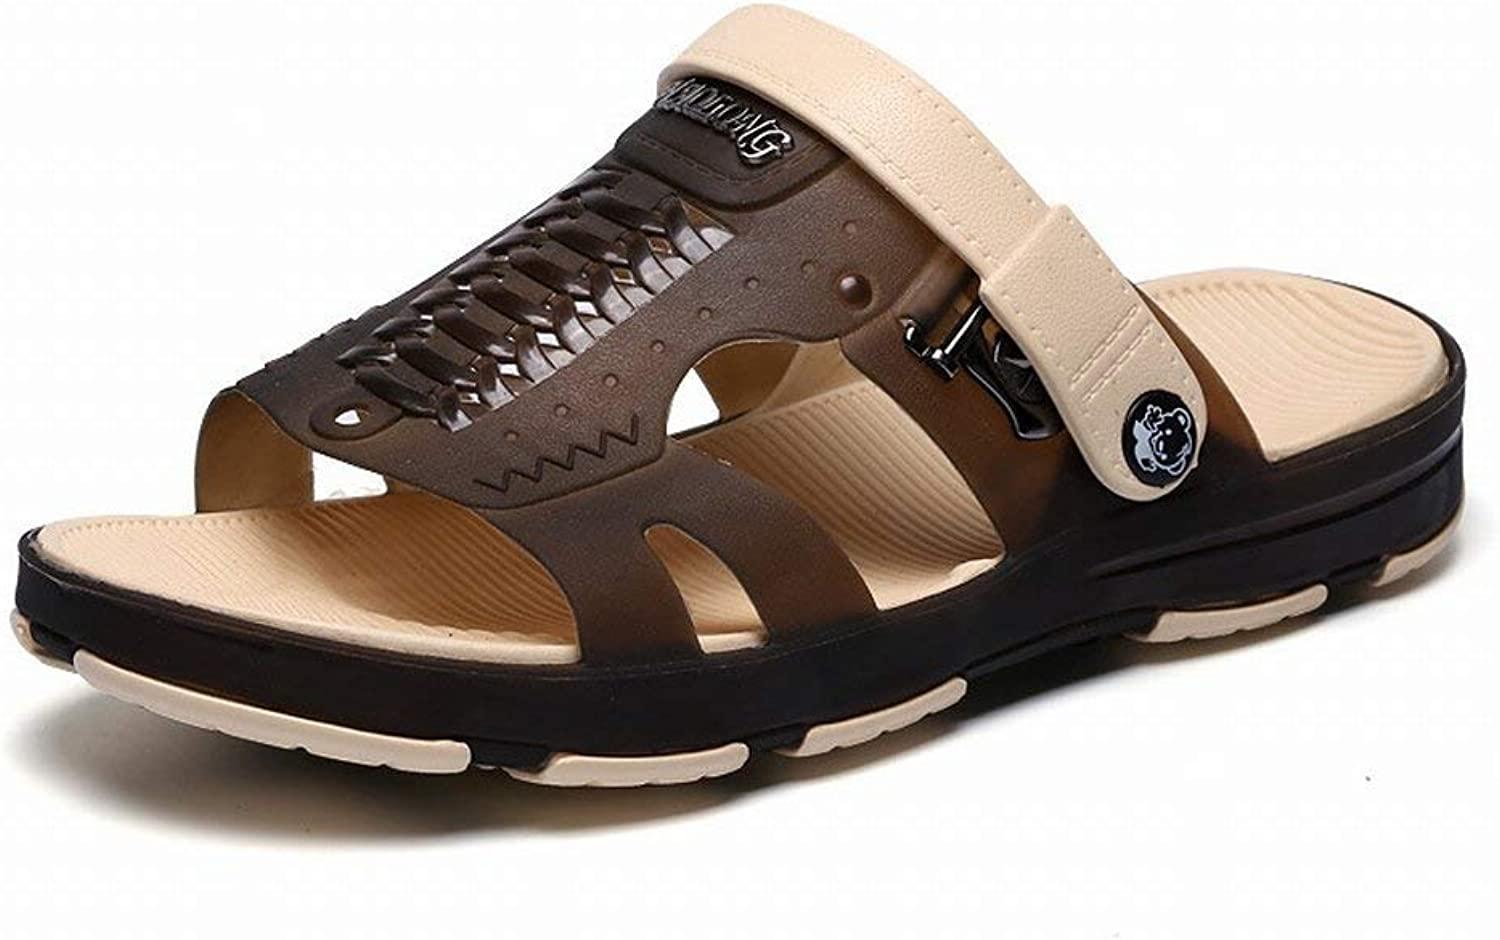 Fashion Breathable Hole shoes Comfort All-Match Sandals Trend Casual Slippers (color   Coffee, Size   43)